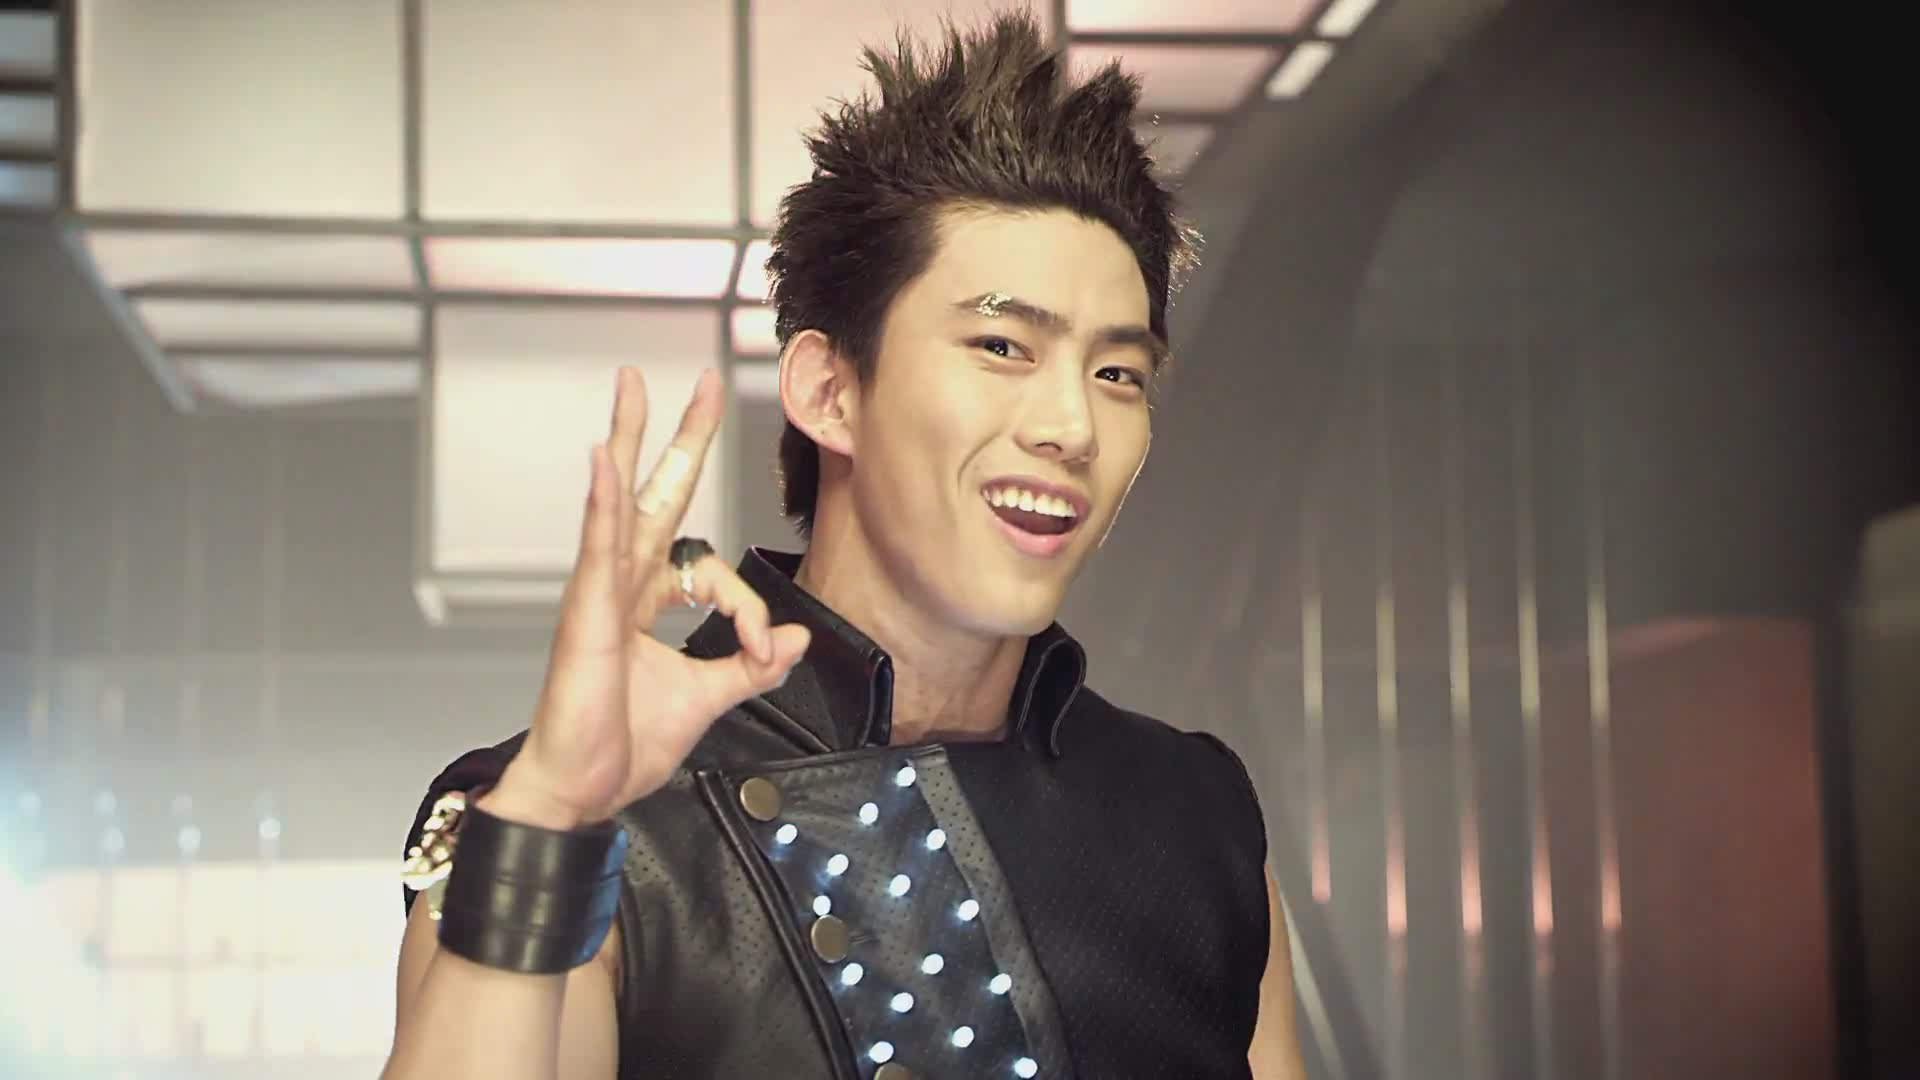 Taecyeon Hands Up MV - taecyeon 2pm Image (27831102) - Fanpop